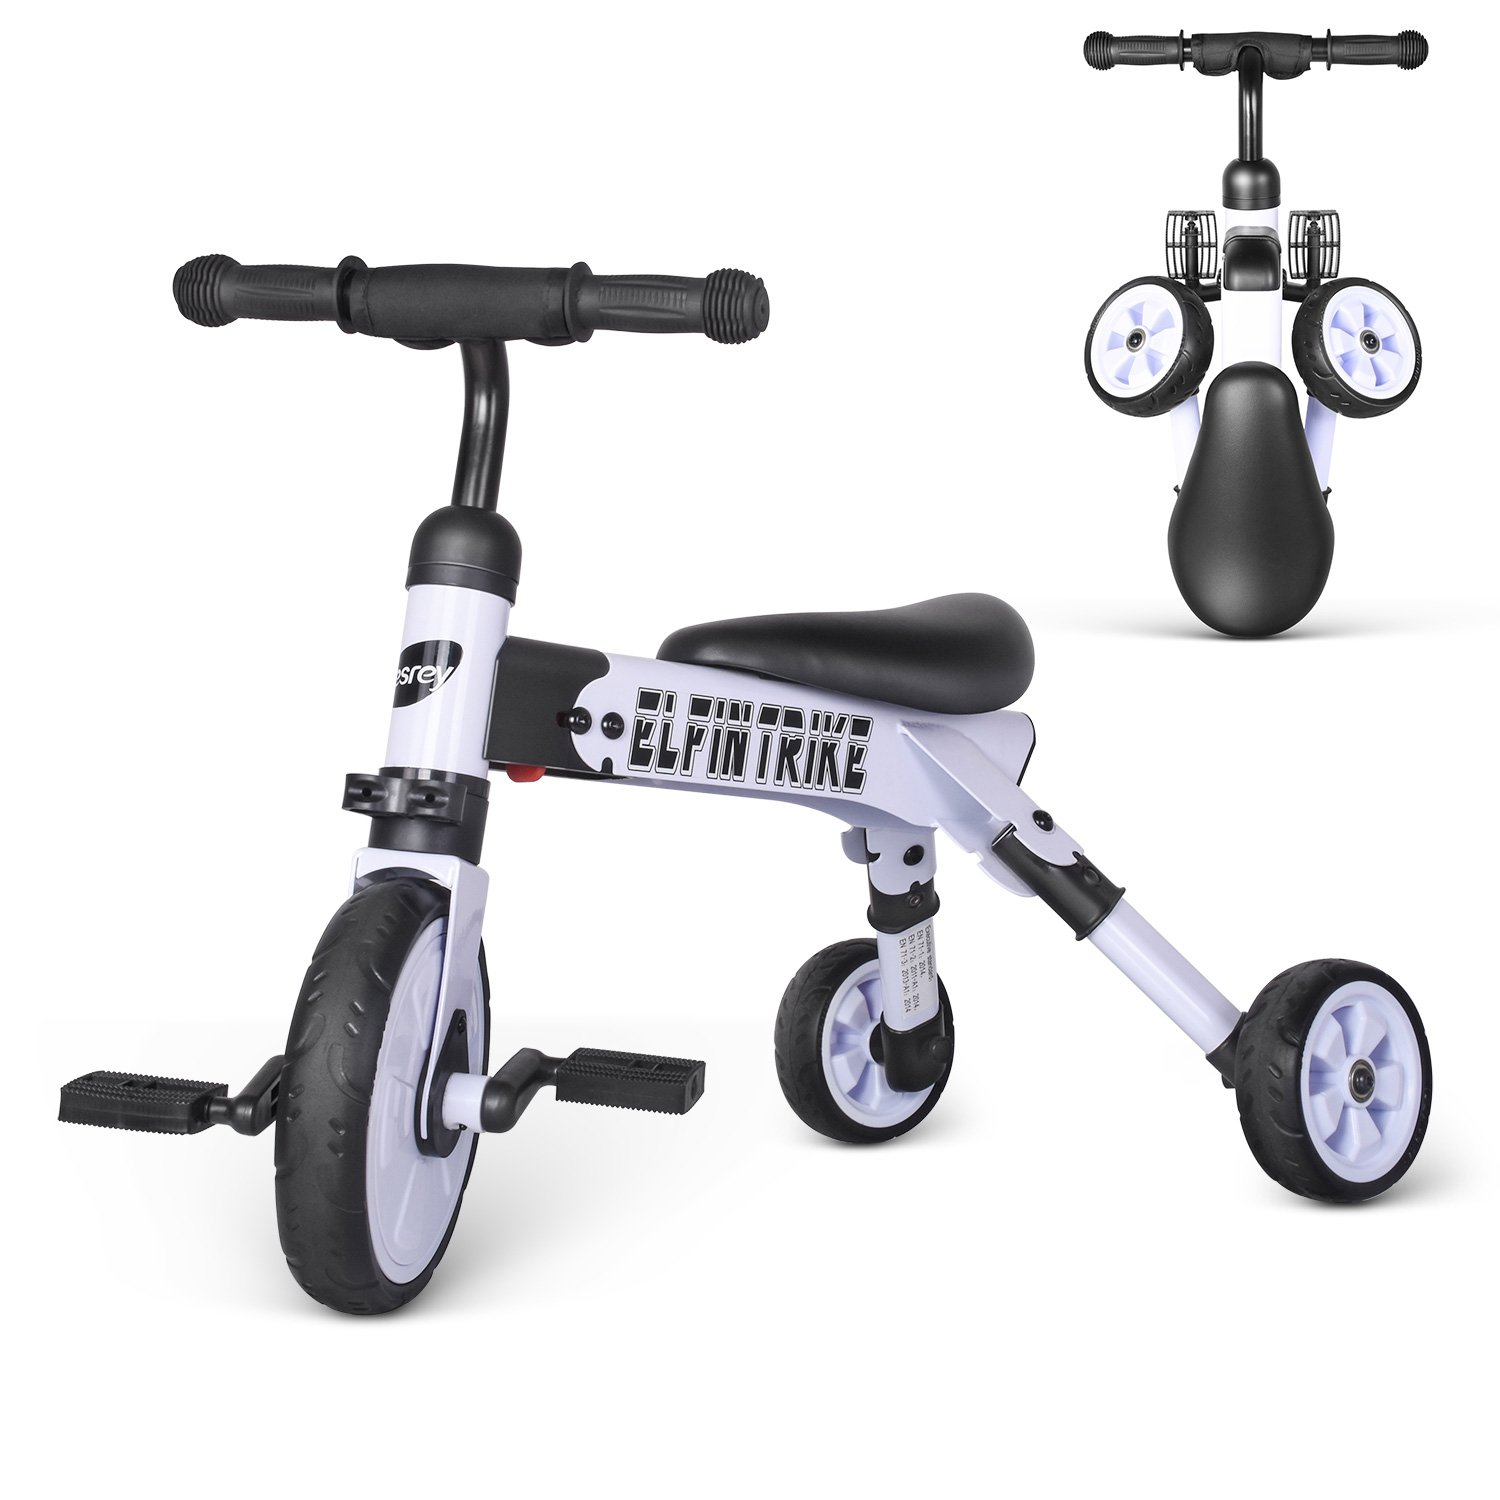 besrey Toddler Tricycle 2 In 1 Trike Baby Balance Bike Foldable Kids Riding Toys for Ages 12 Months Old and up Boys or Girls